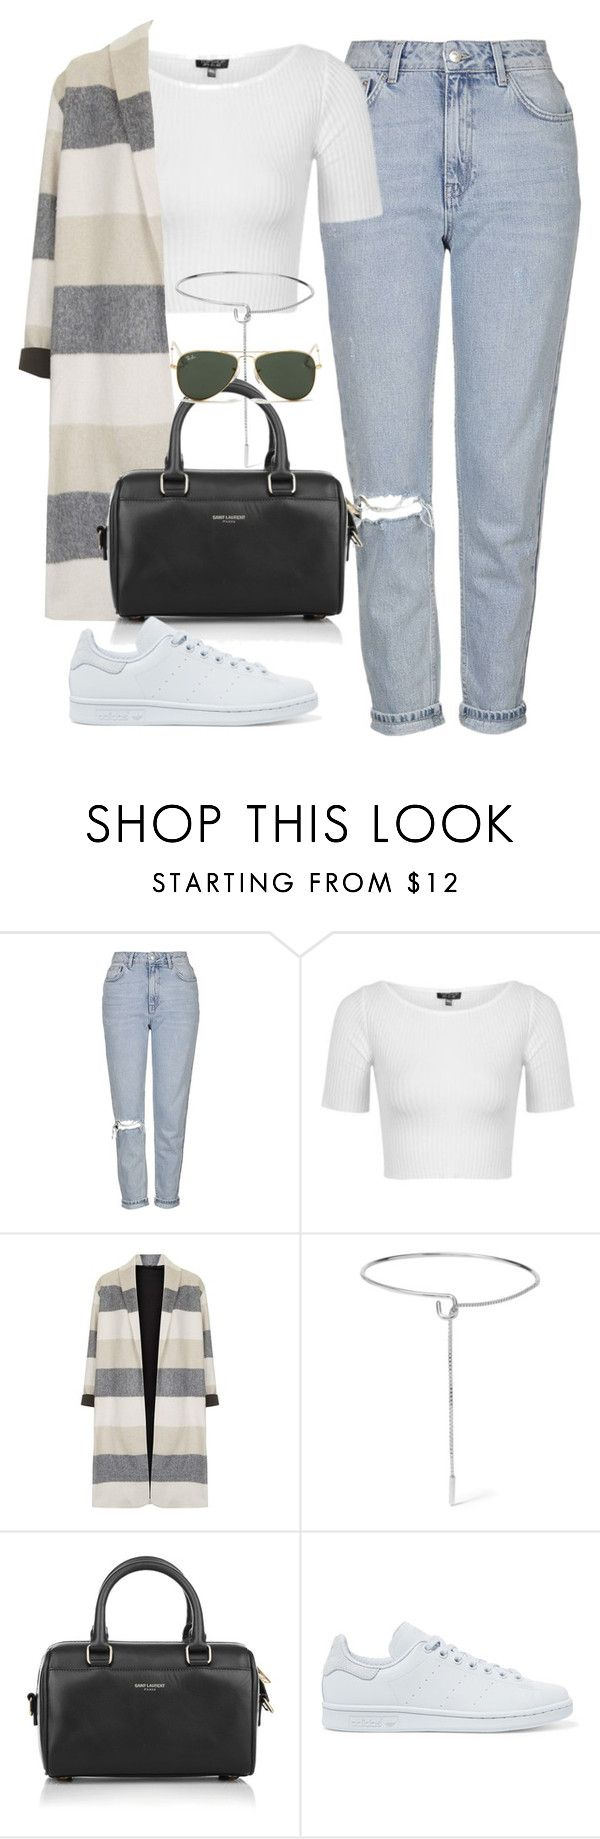 """Sin título #2078"" by camila-echi ❤ liked on Polyvore featuring Topshop, Eddie Borgo, Yves Saint Laurent, adidas Originals and Ray-Ban"